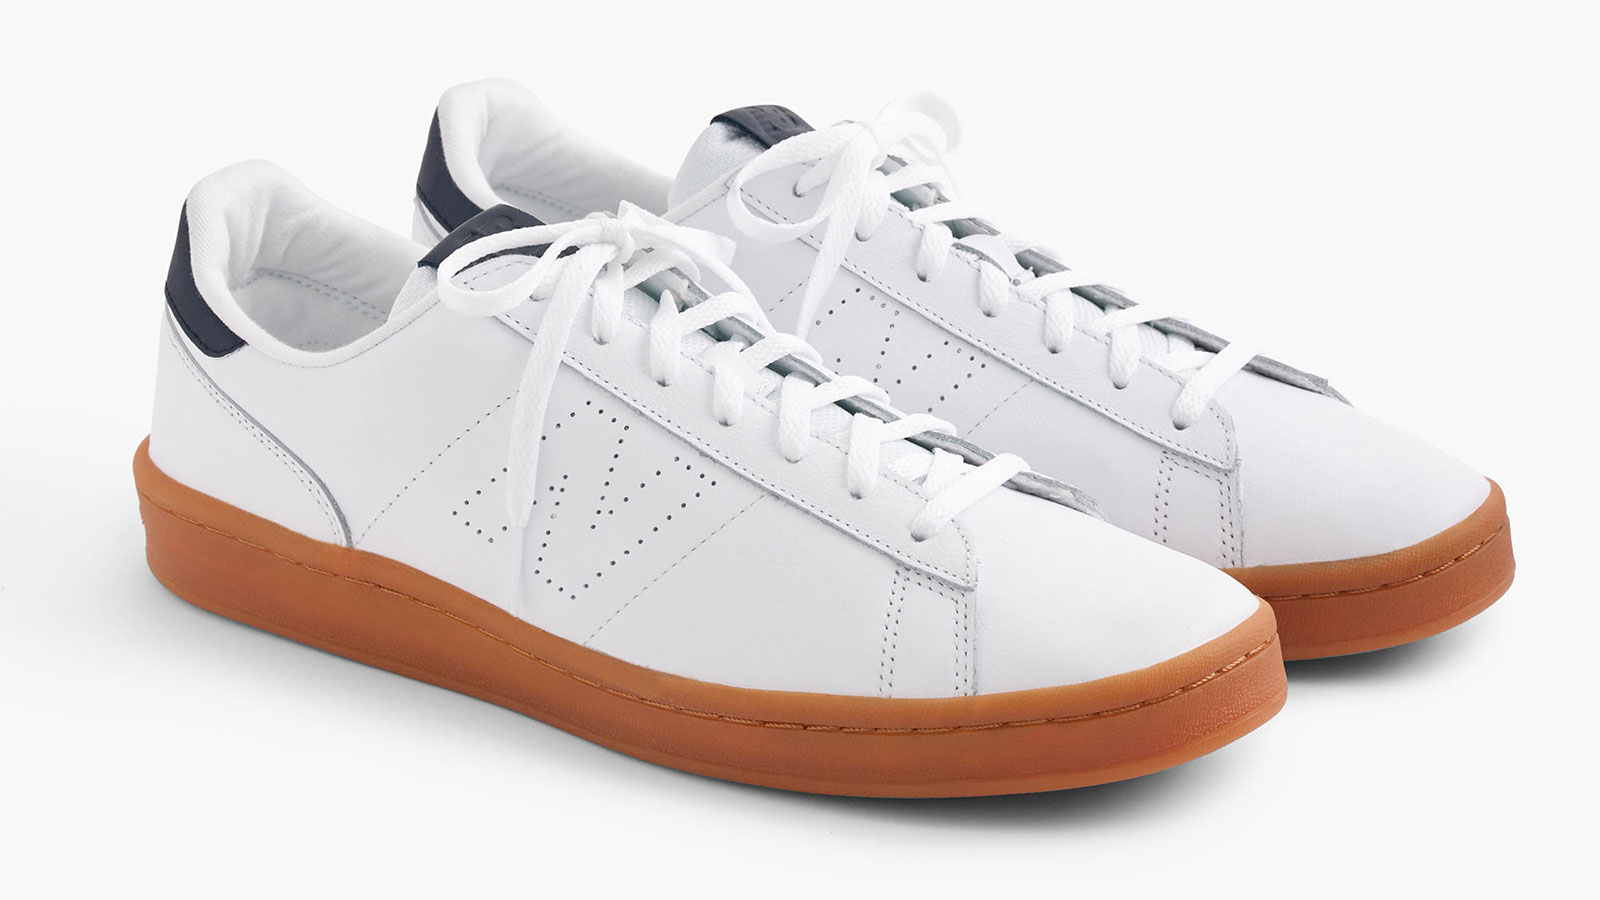 New Balance for J. Crew 791 Leather White Men's Sneakers | best men's white sneakers